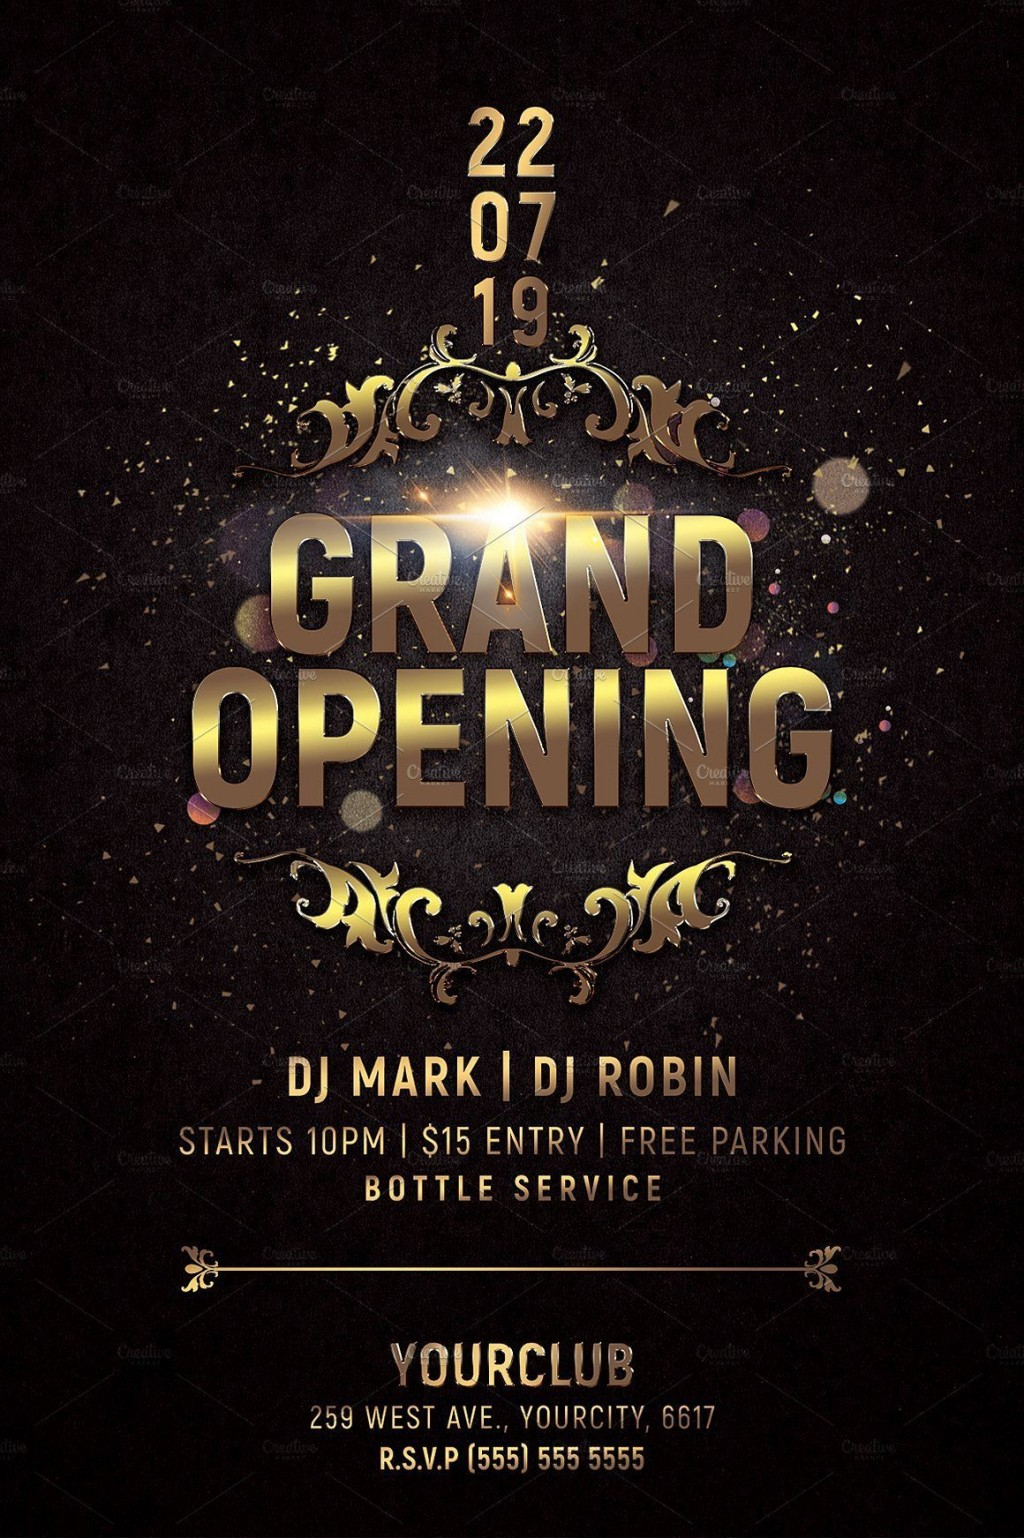 000 Awful Grand Opening Flyer Template Photo  Free Psd BusinesLarge